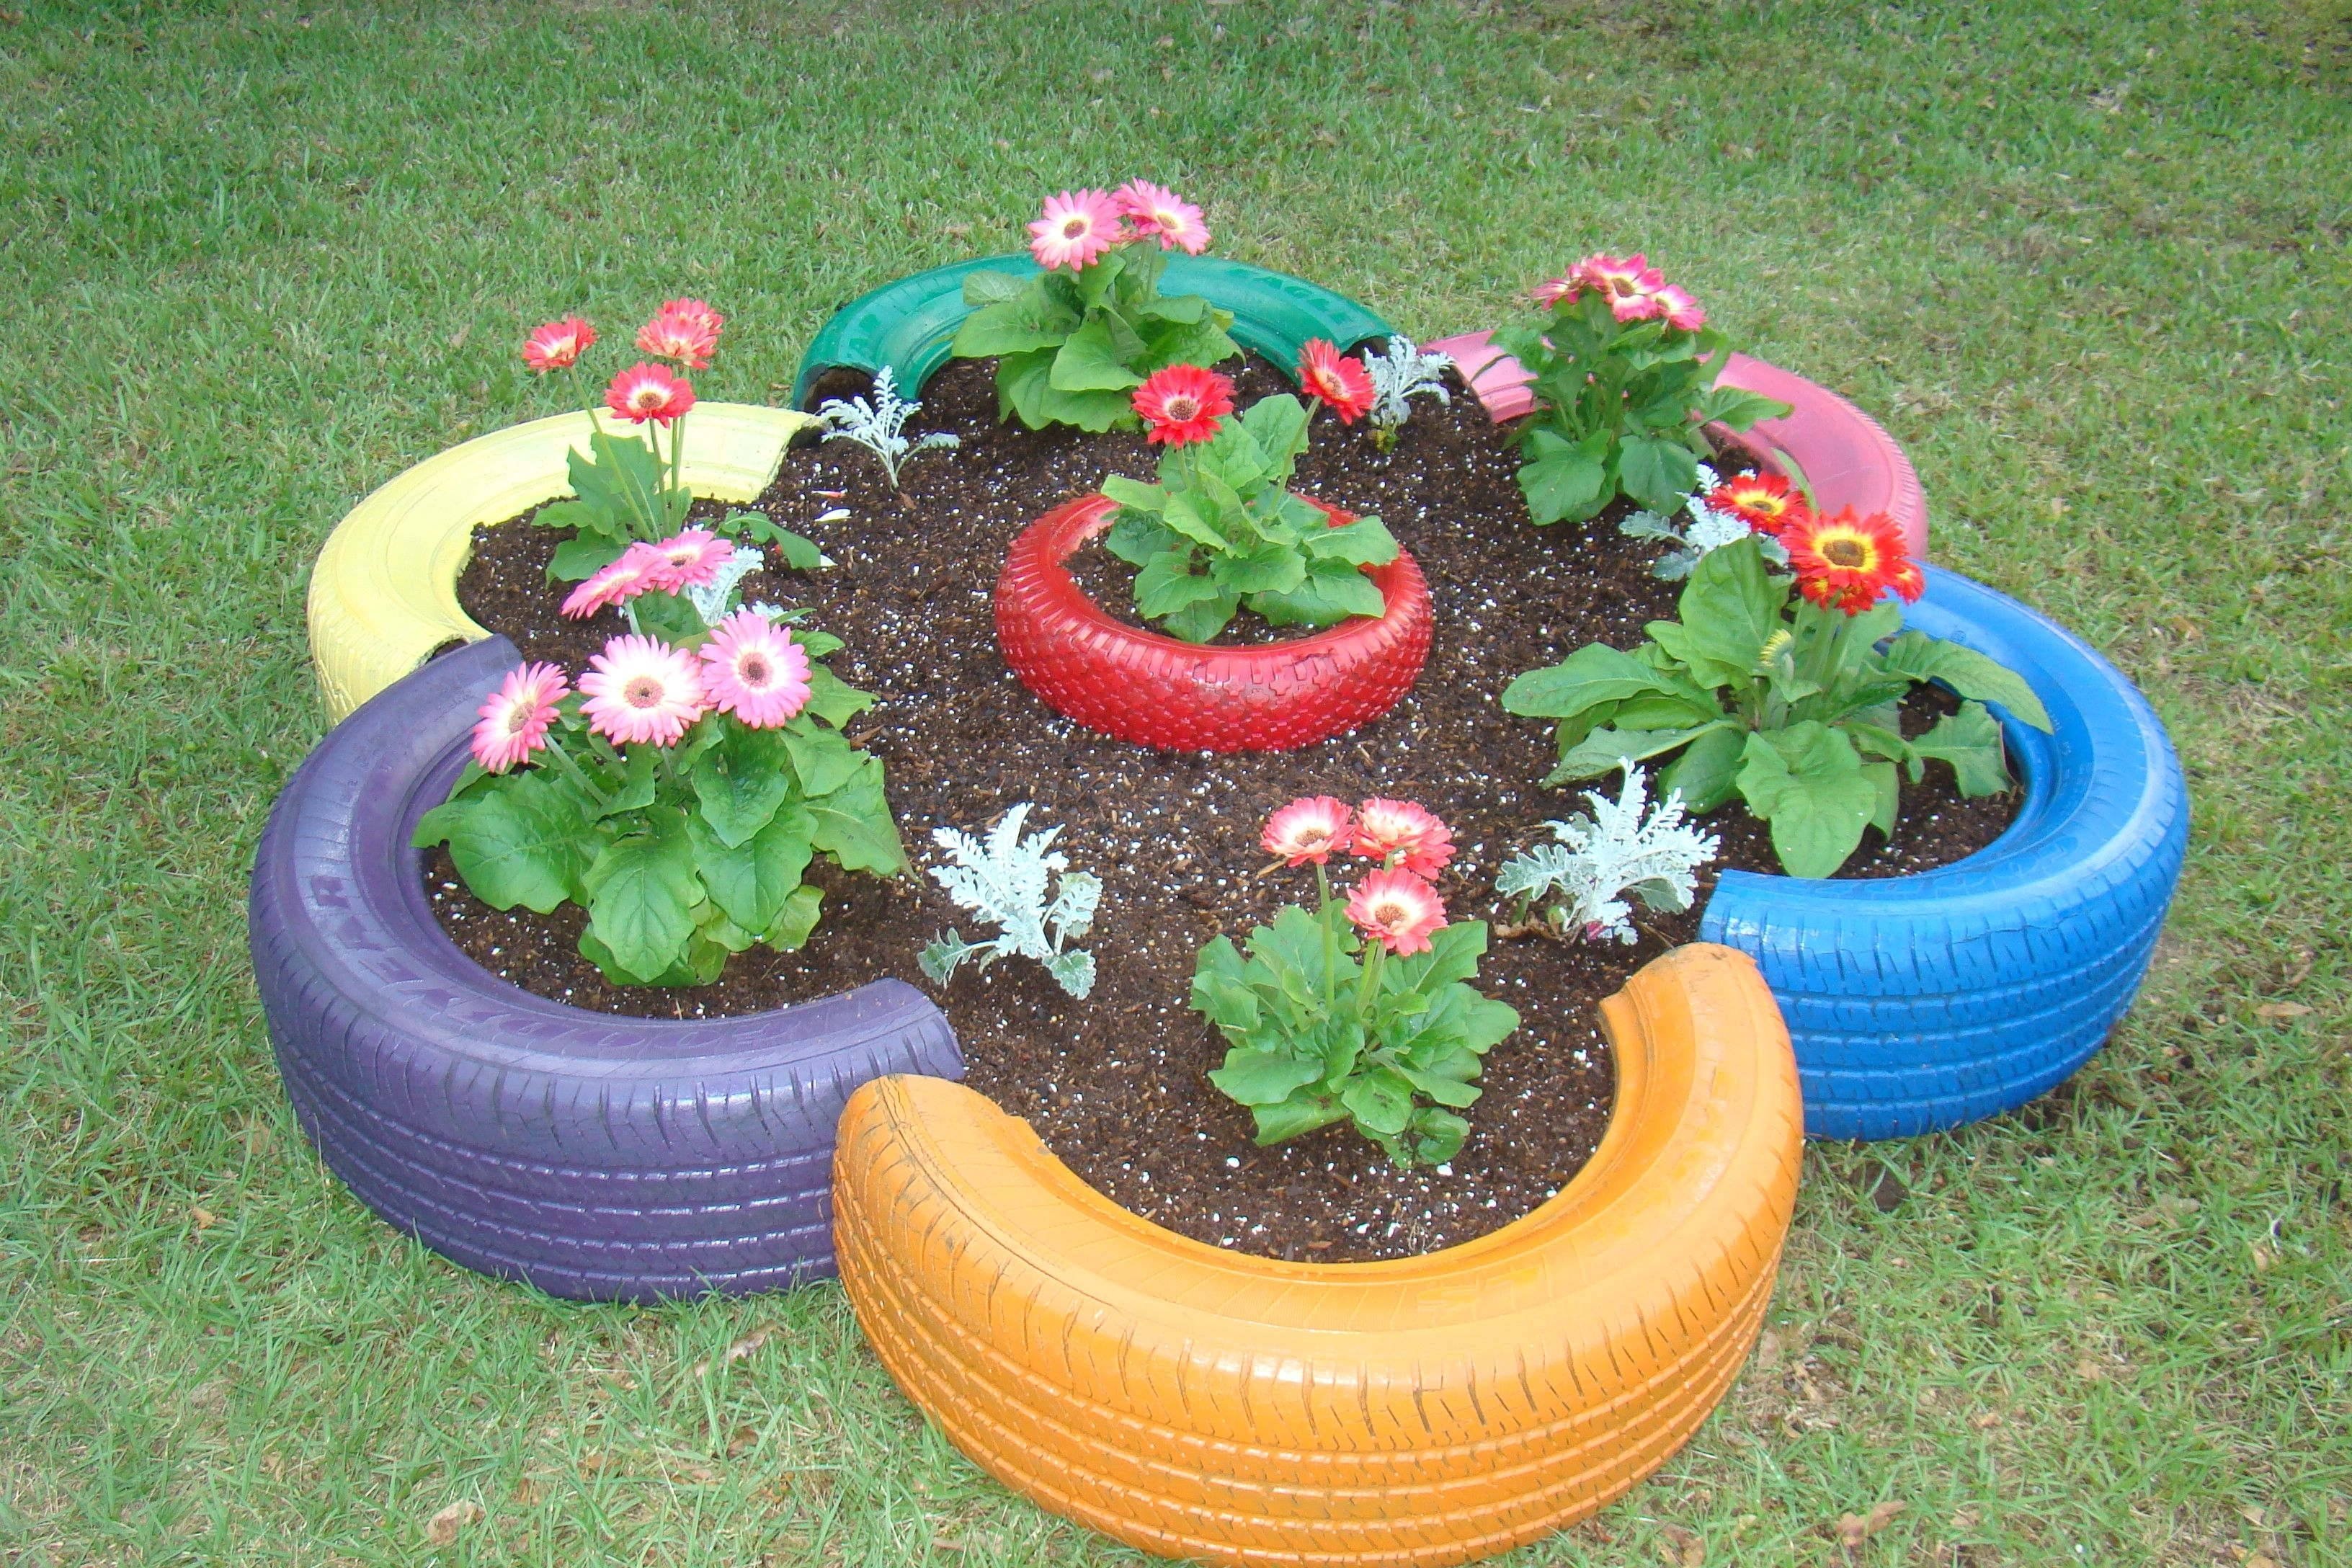 Flower Bed Made From Old Tires And Small Tire In The Center. | My within Flower Garden Using Old Tires